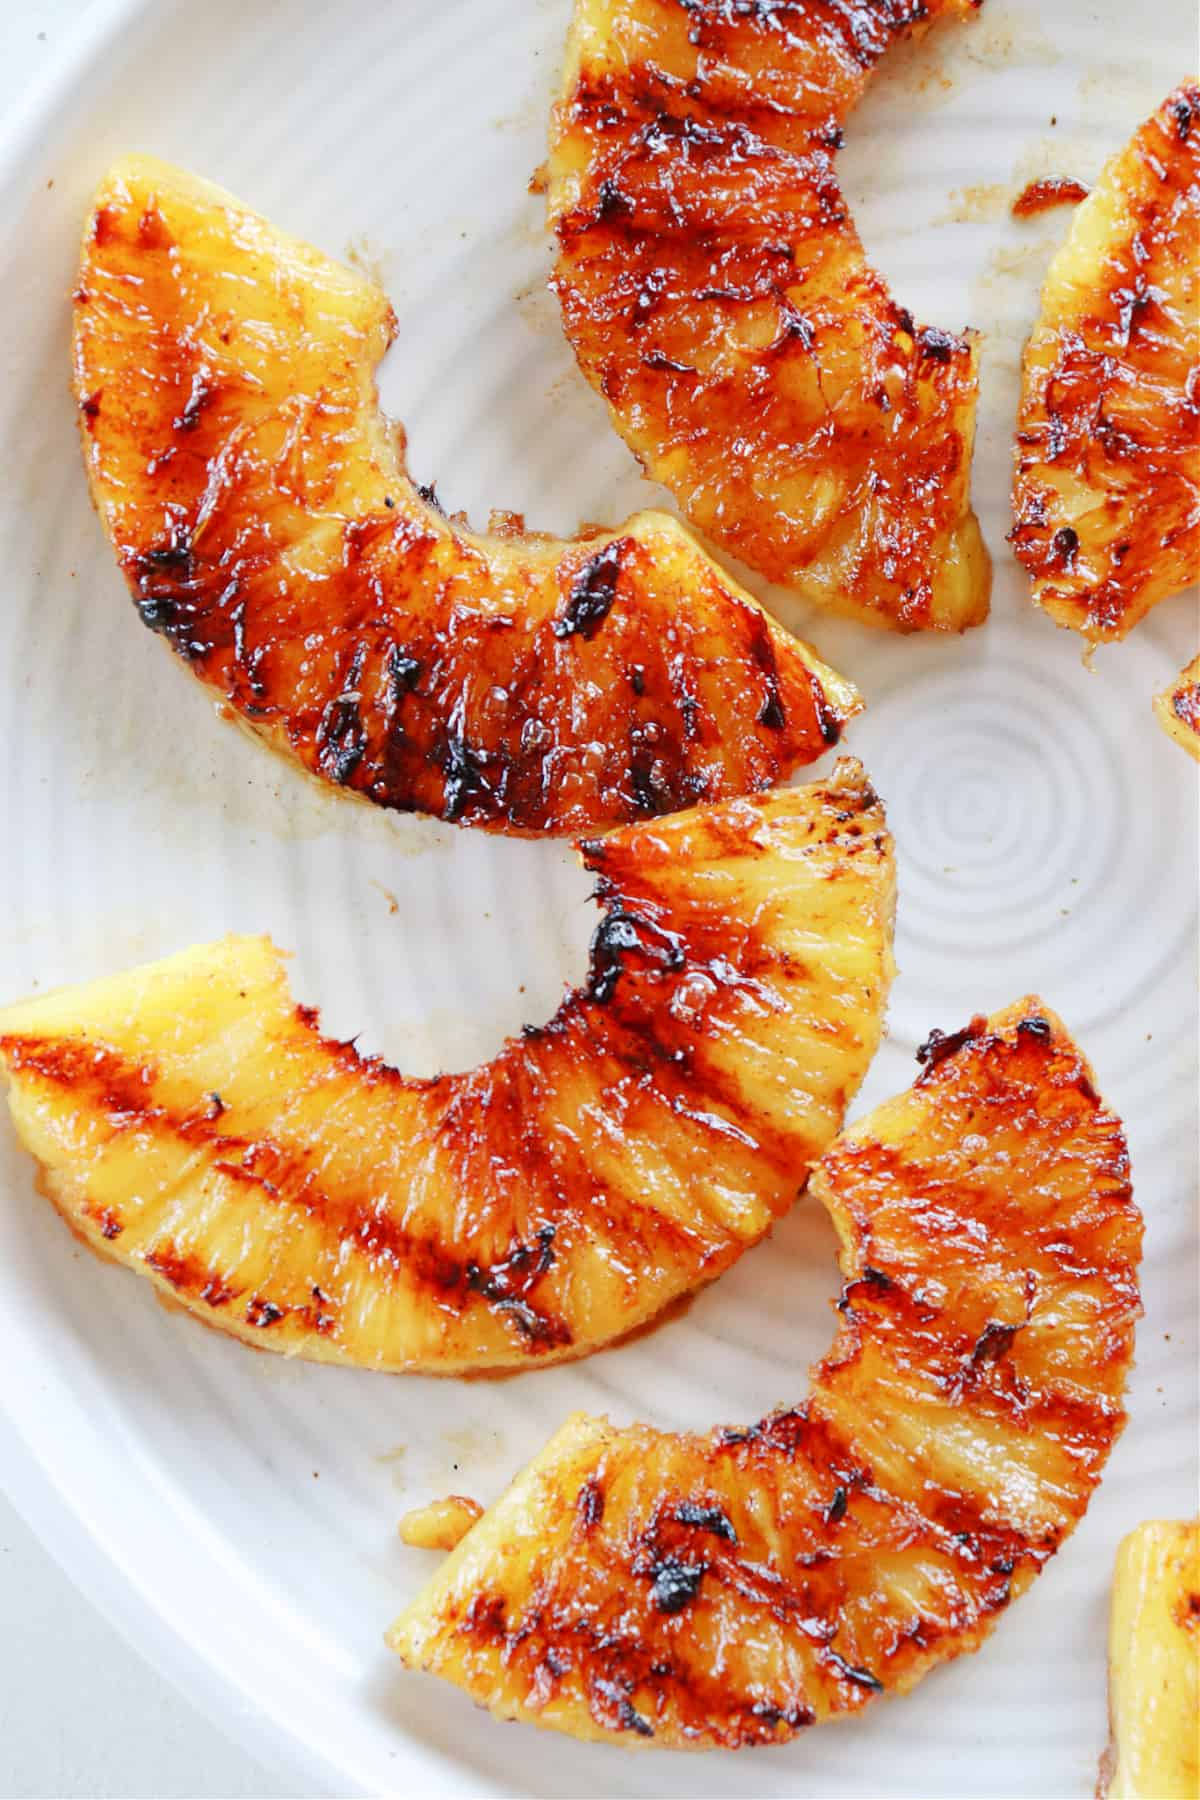 grilled pineapple 1 Grilled Pineapple